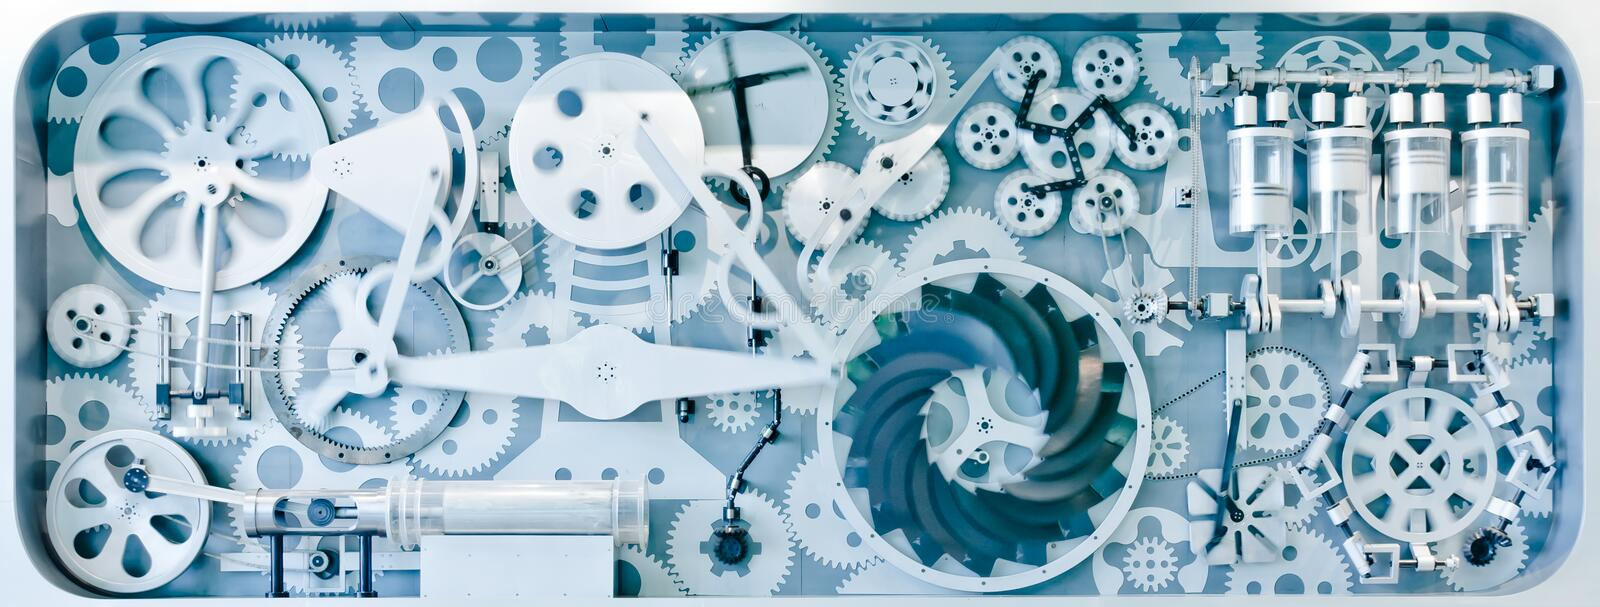 Complex industrial gear systems. Model royalty free stock photo